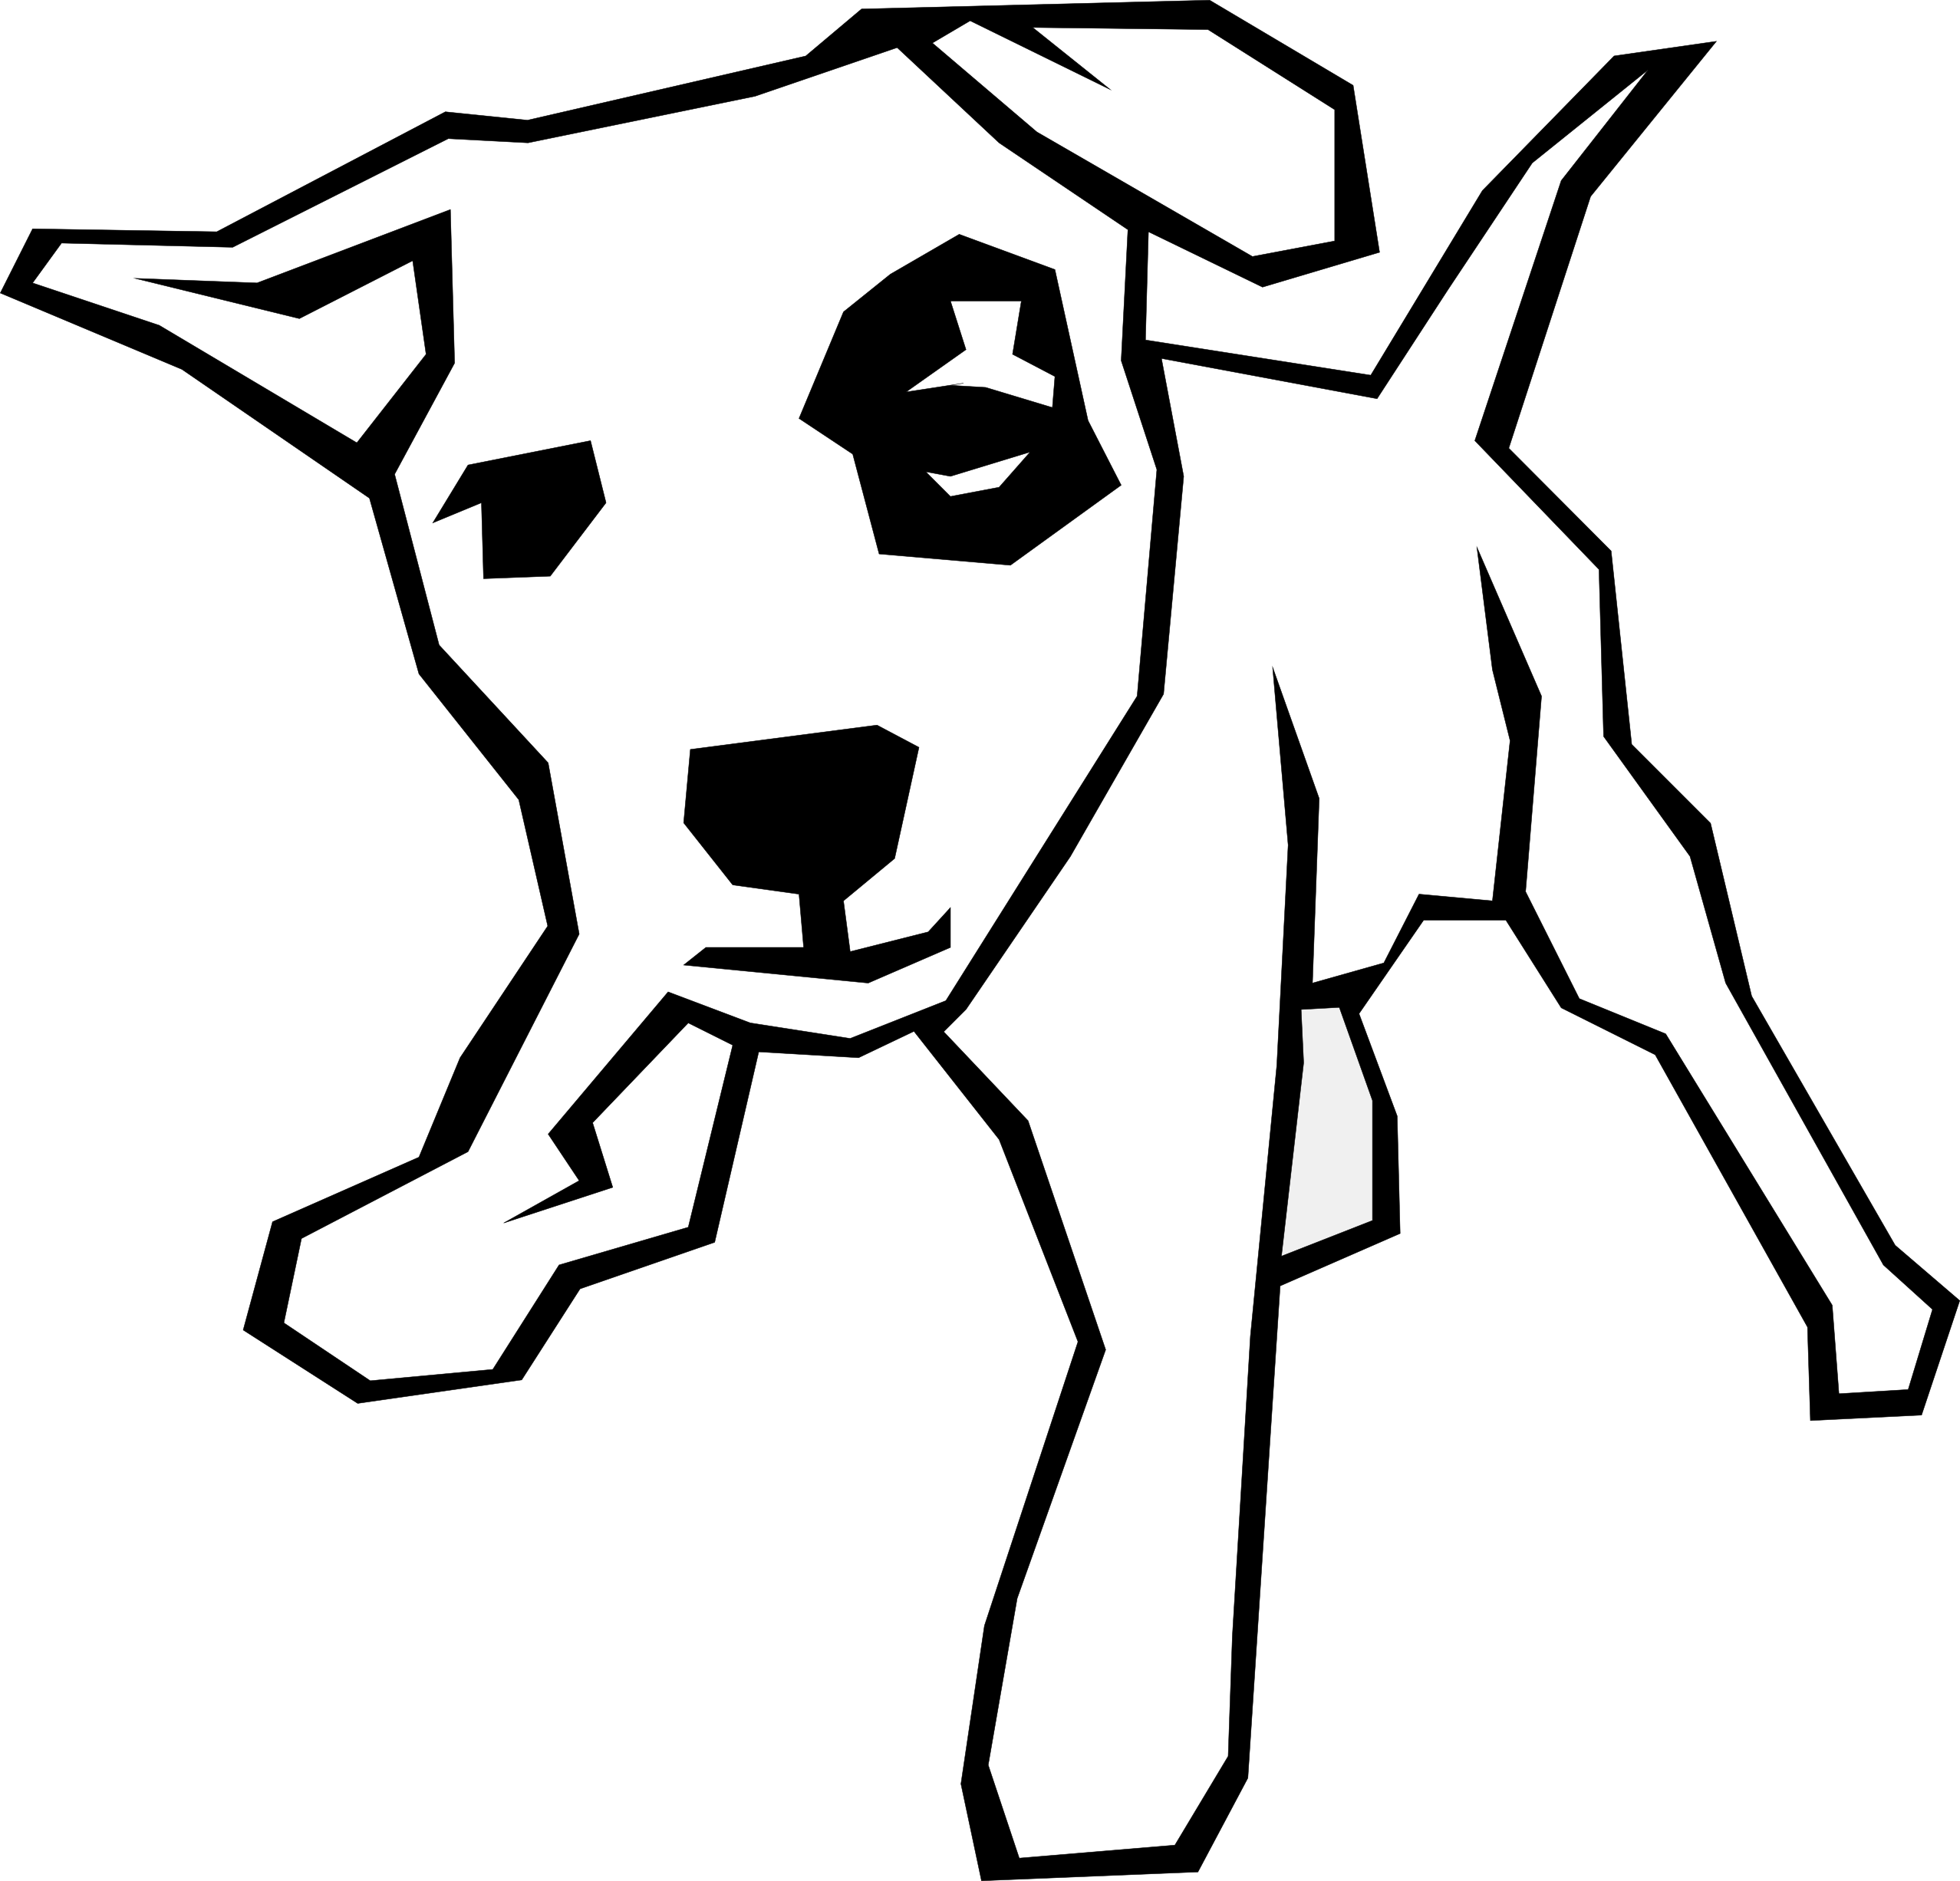 Line Drawing Of Dog : Line drawings of dog clipart best